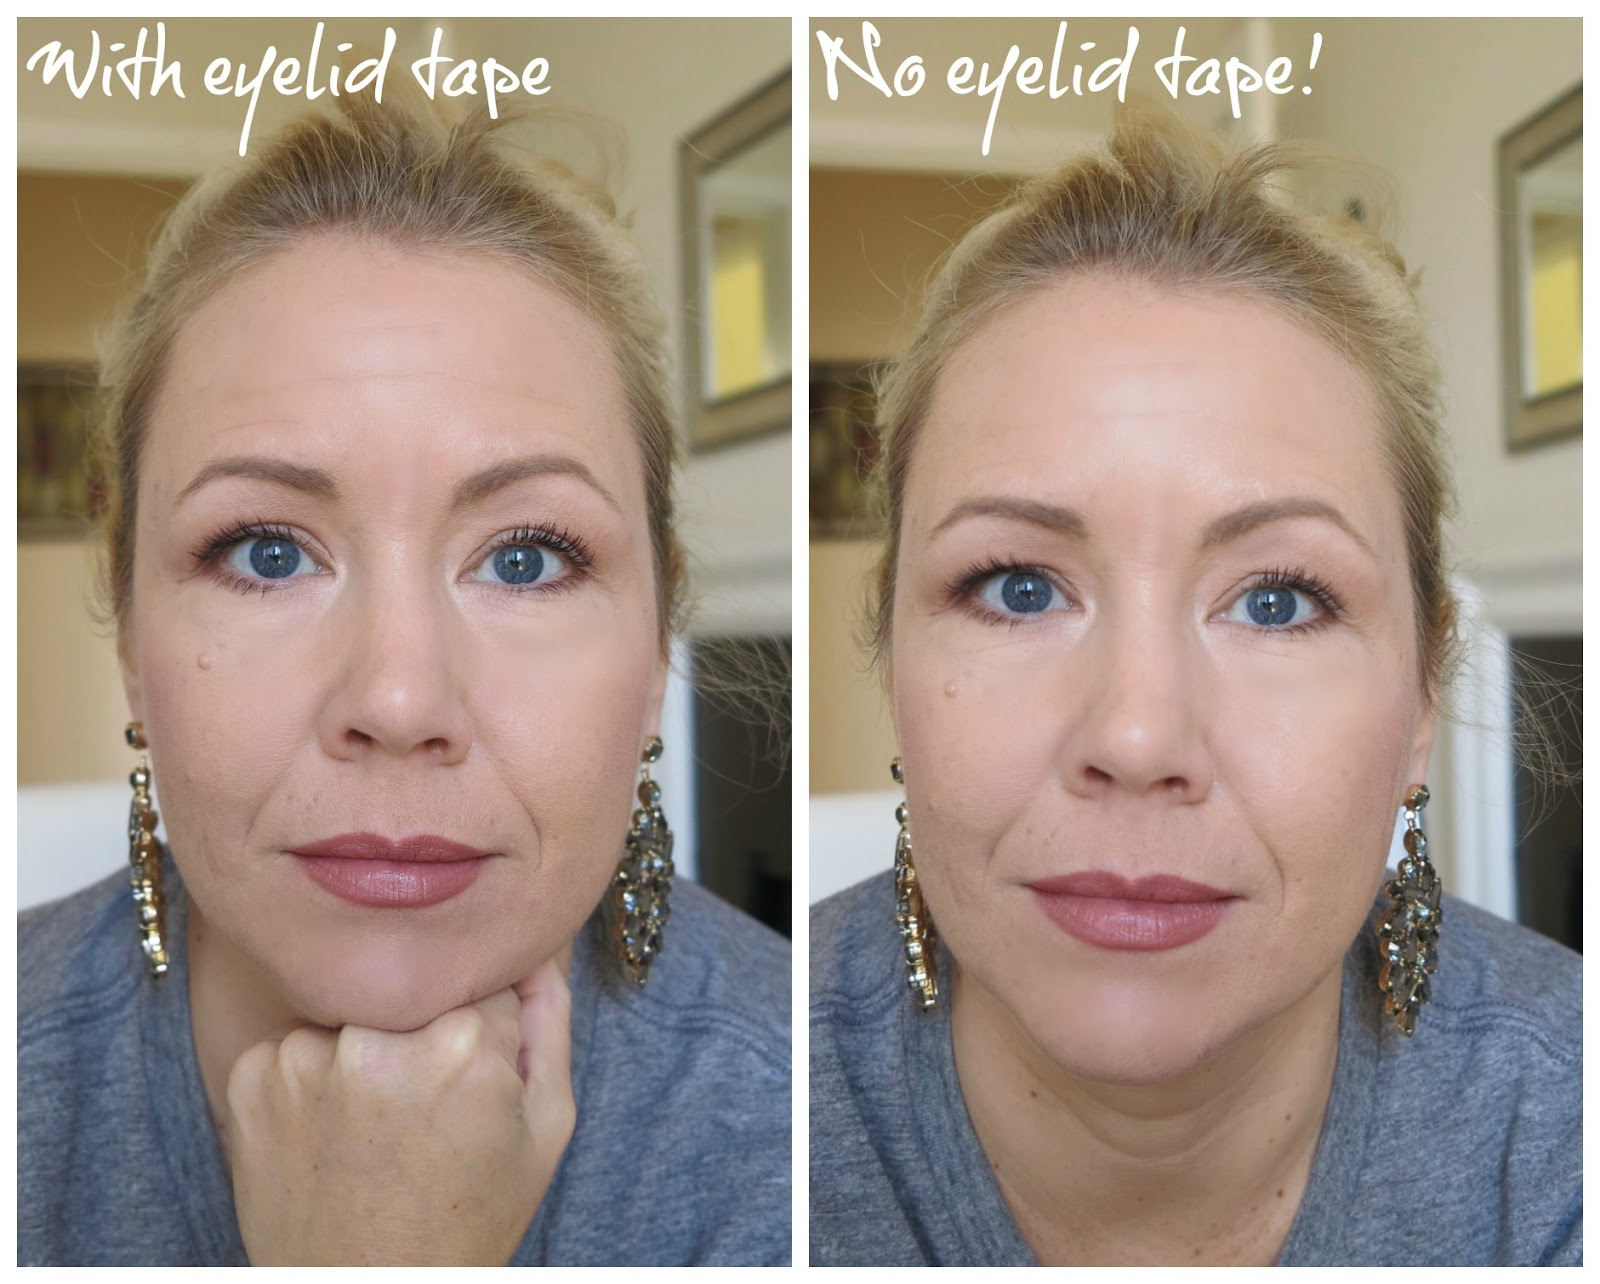 Eyelid Tape For Hooded Eyes- Does This Really Work?